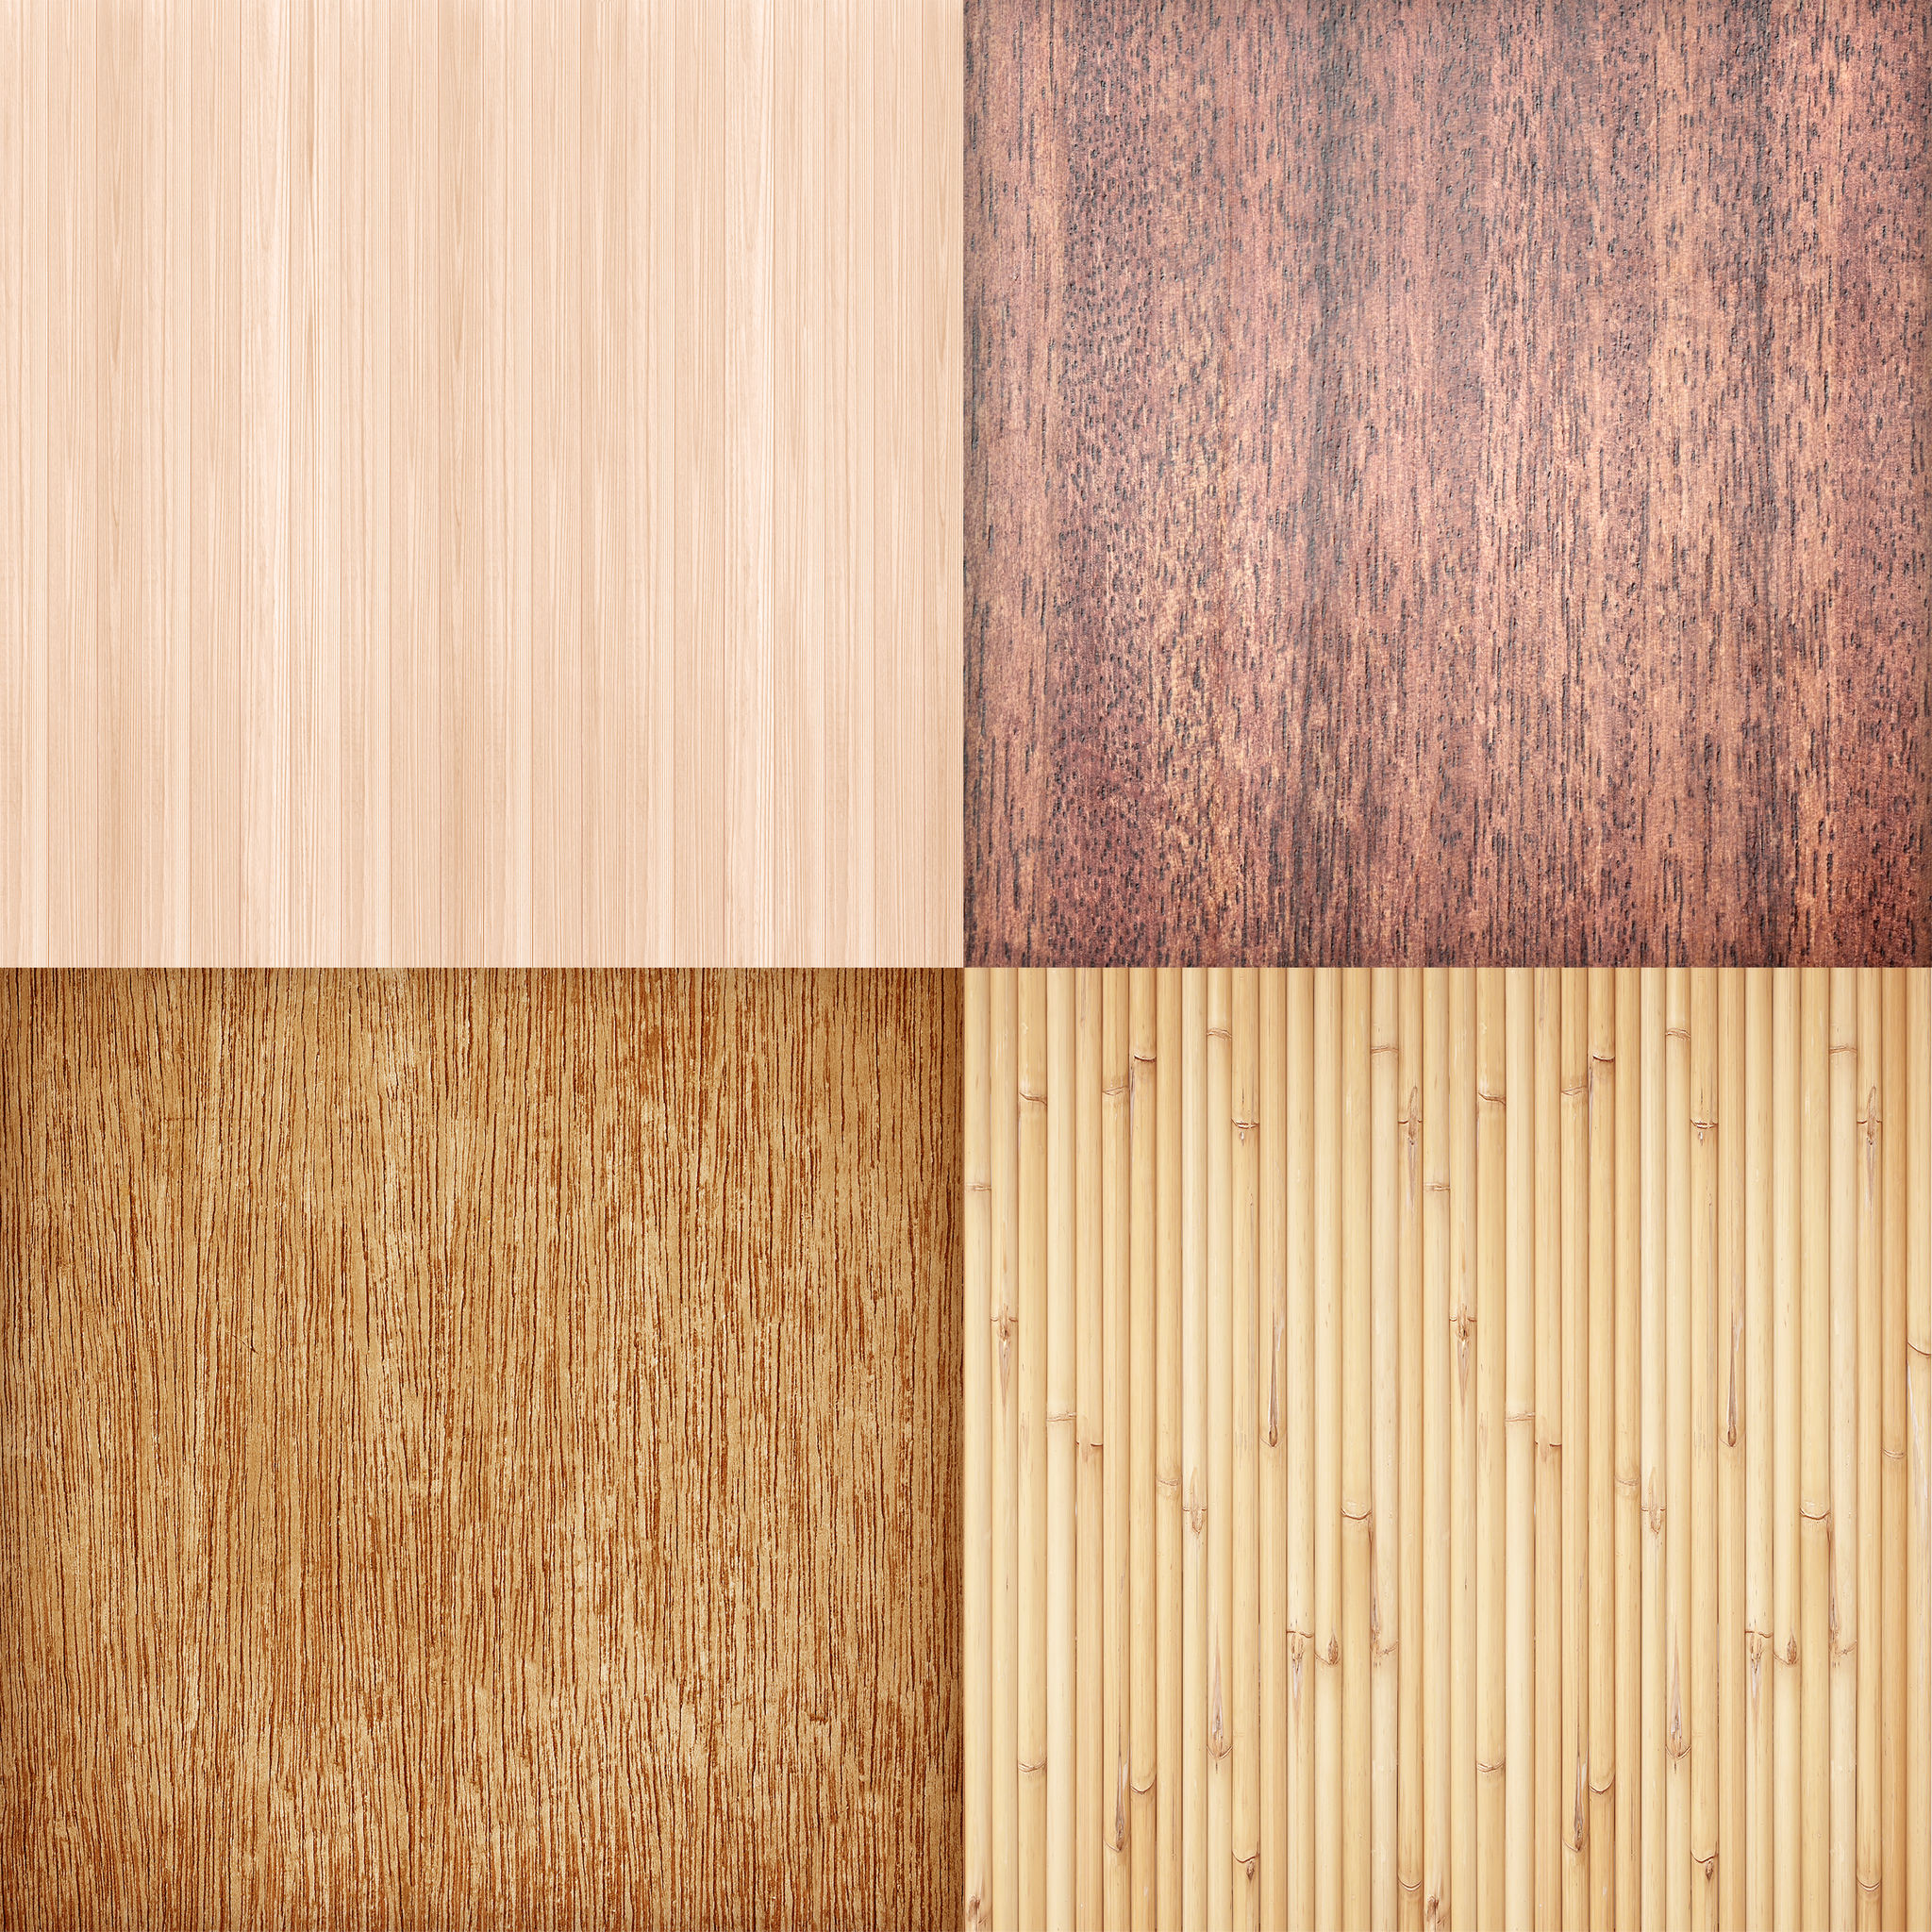 Vinyl Plank Flooring Vs Bamboo: Types Of Bamboo Floors